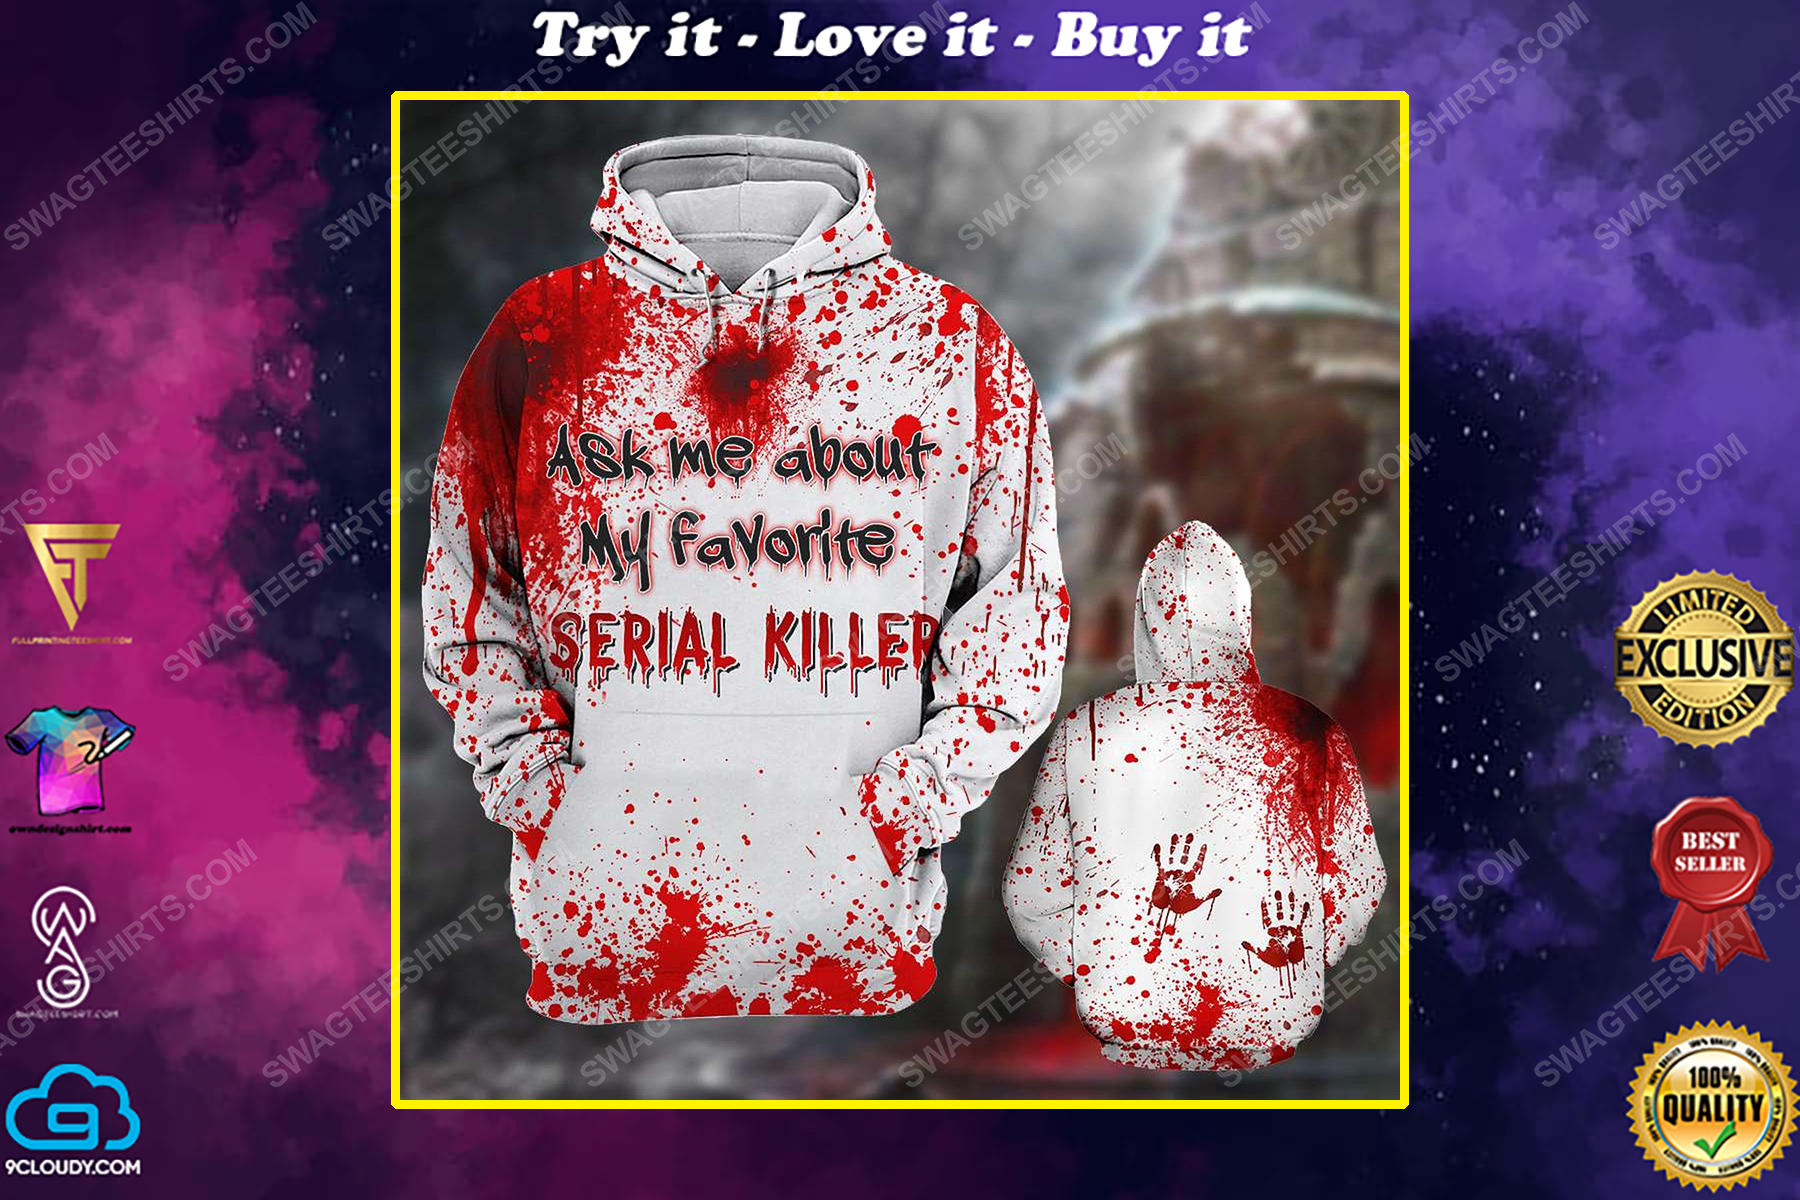 Halloween blood ask me about my favorite serial killer shirt